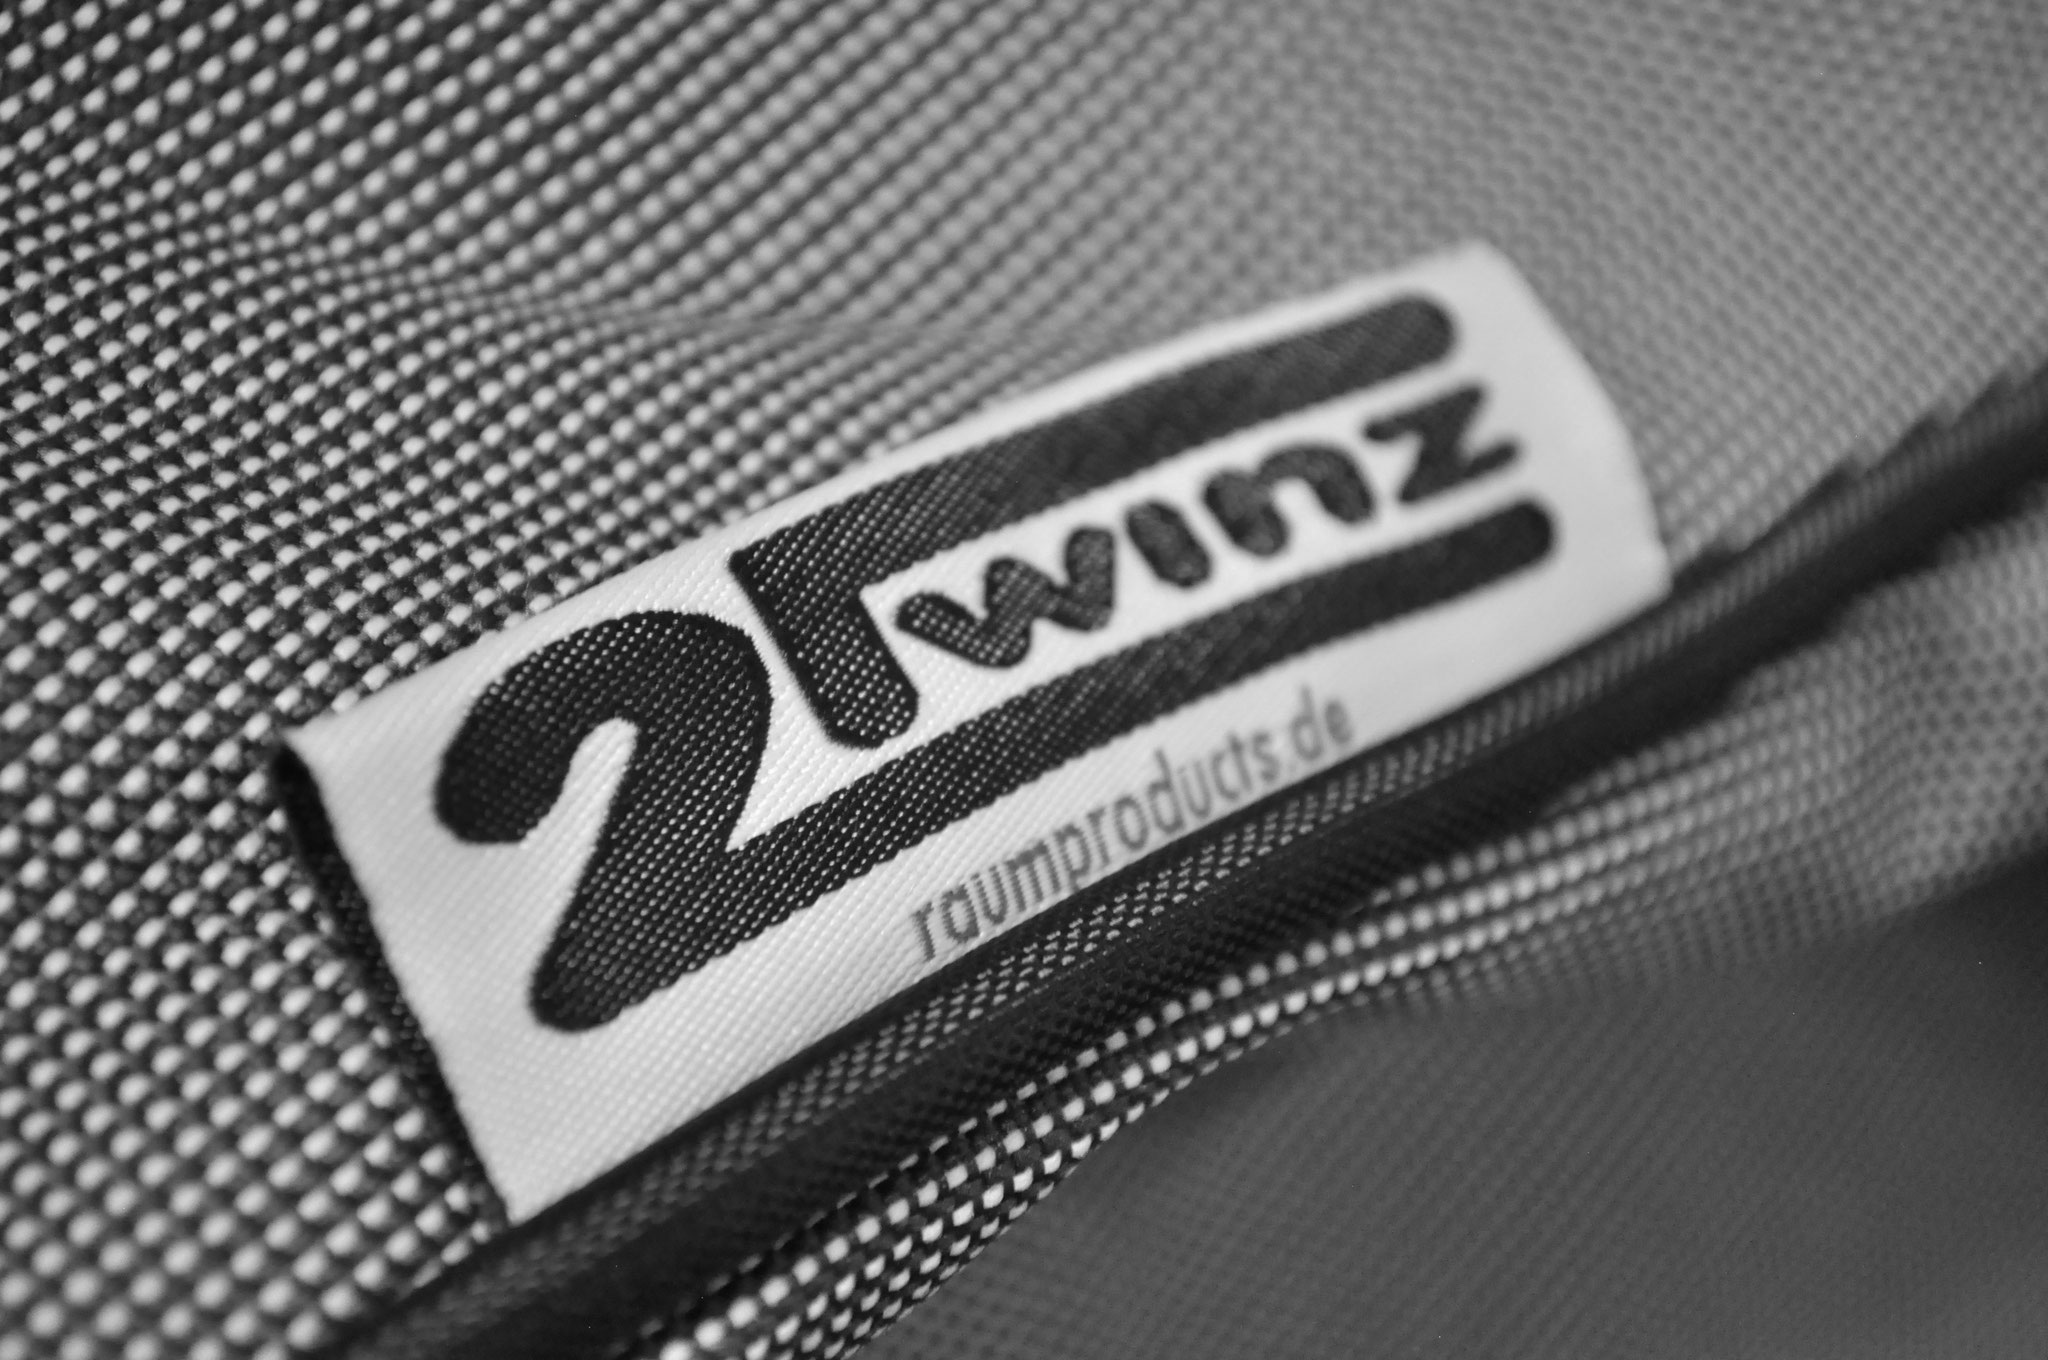 2Twinz Original Label